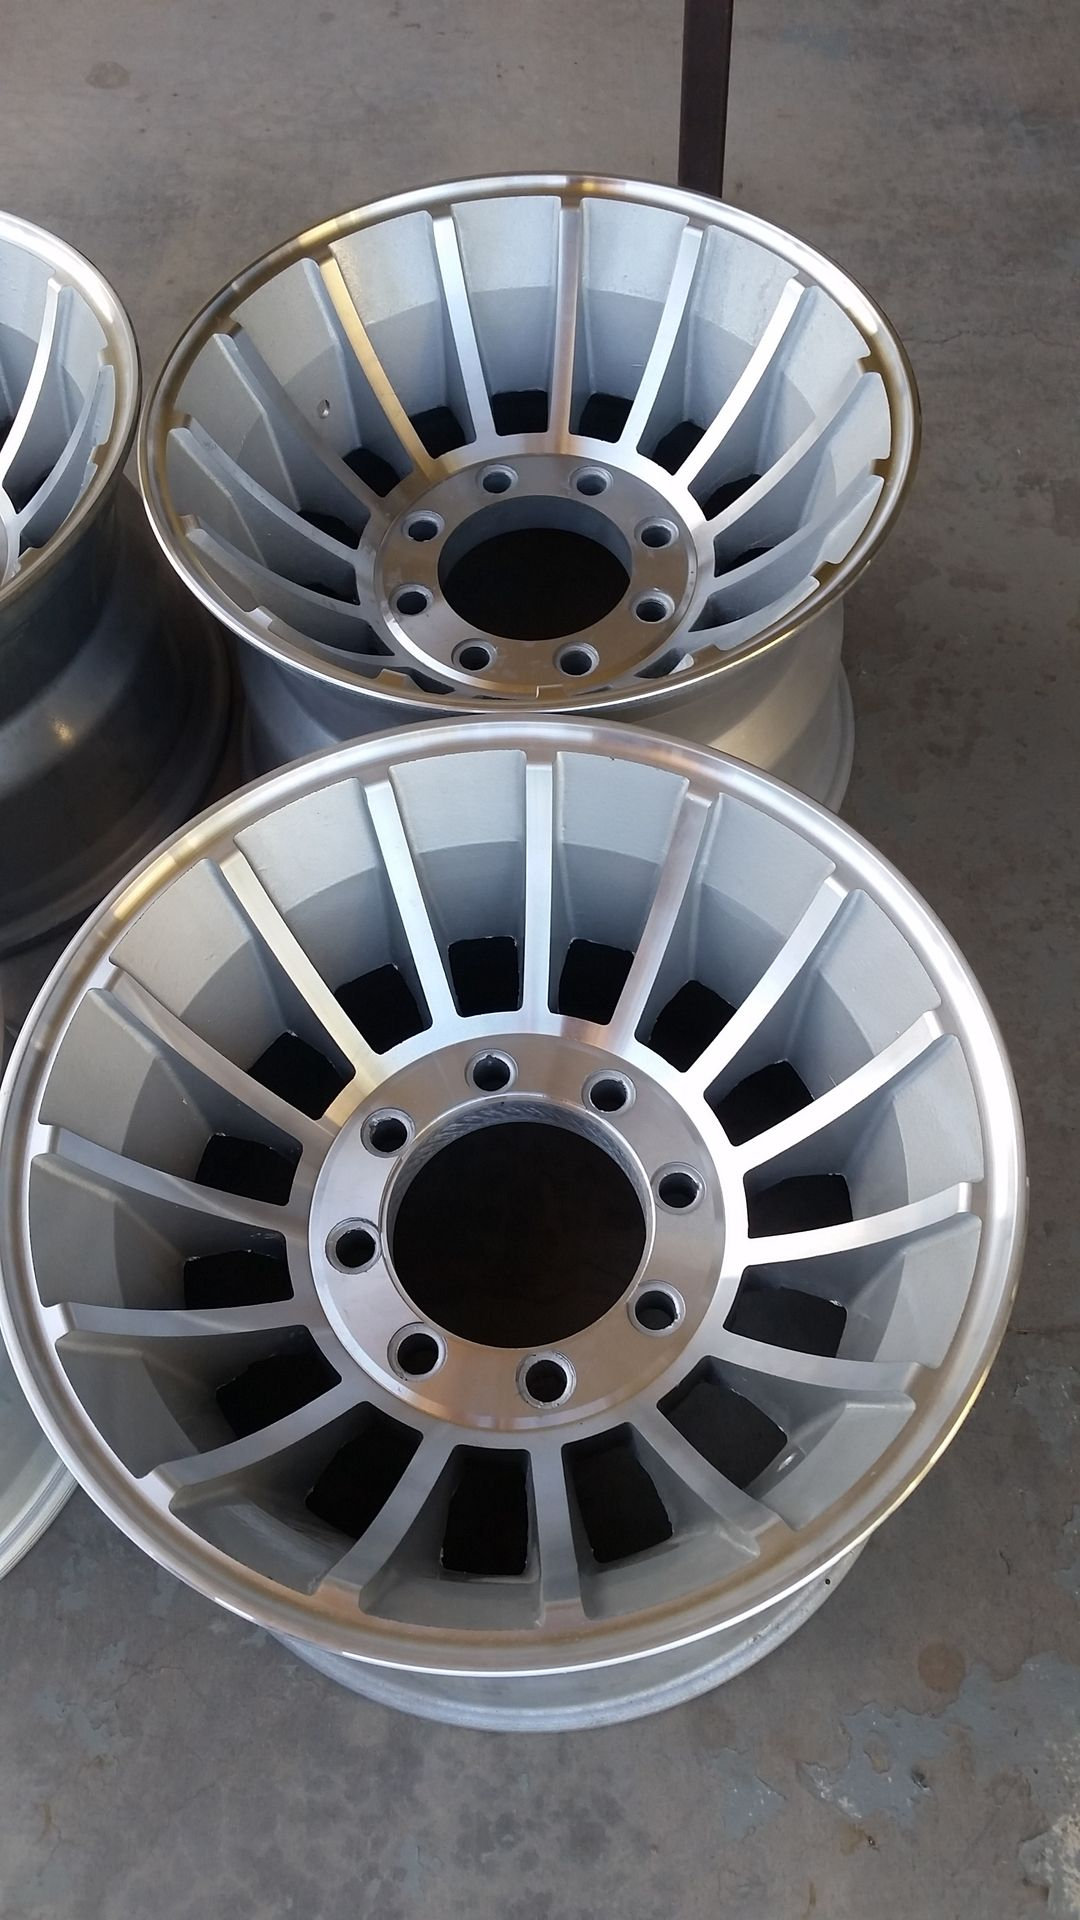 real authentic vintage custom wheels from appliance ansen aew